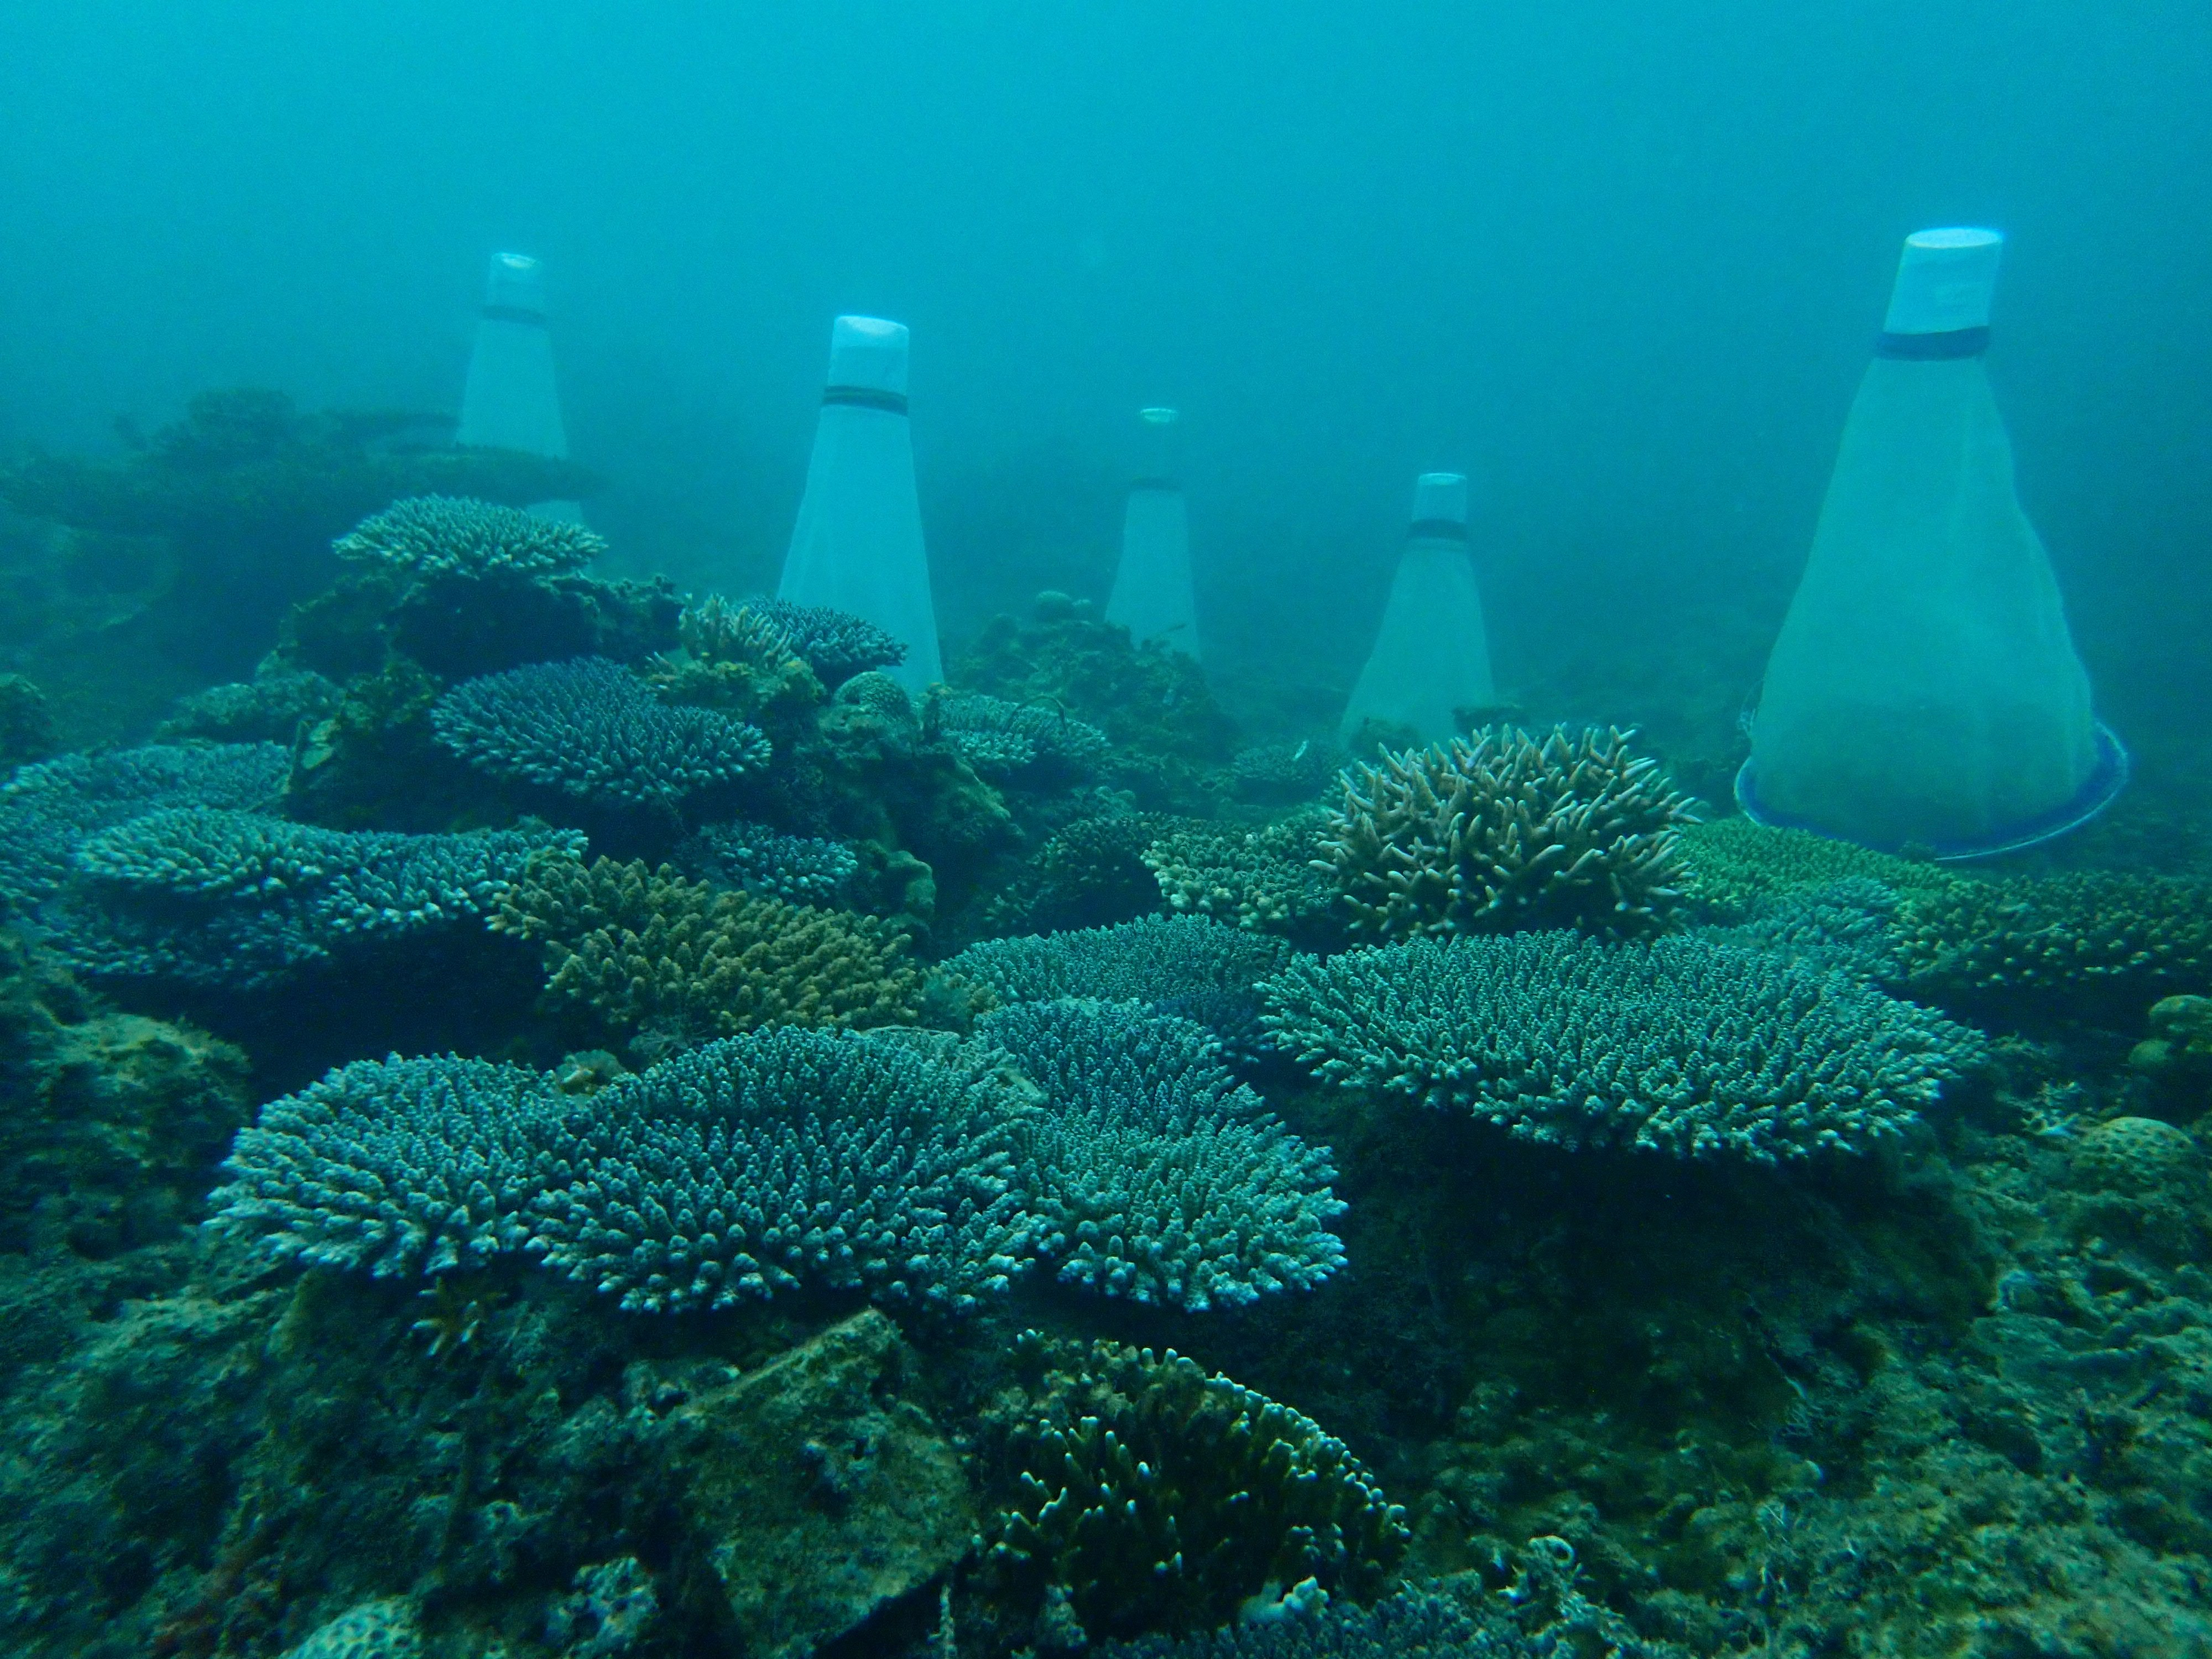 Three year old corals and spawning cones